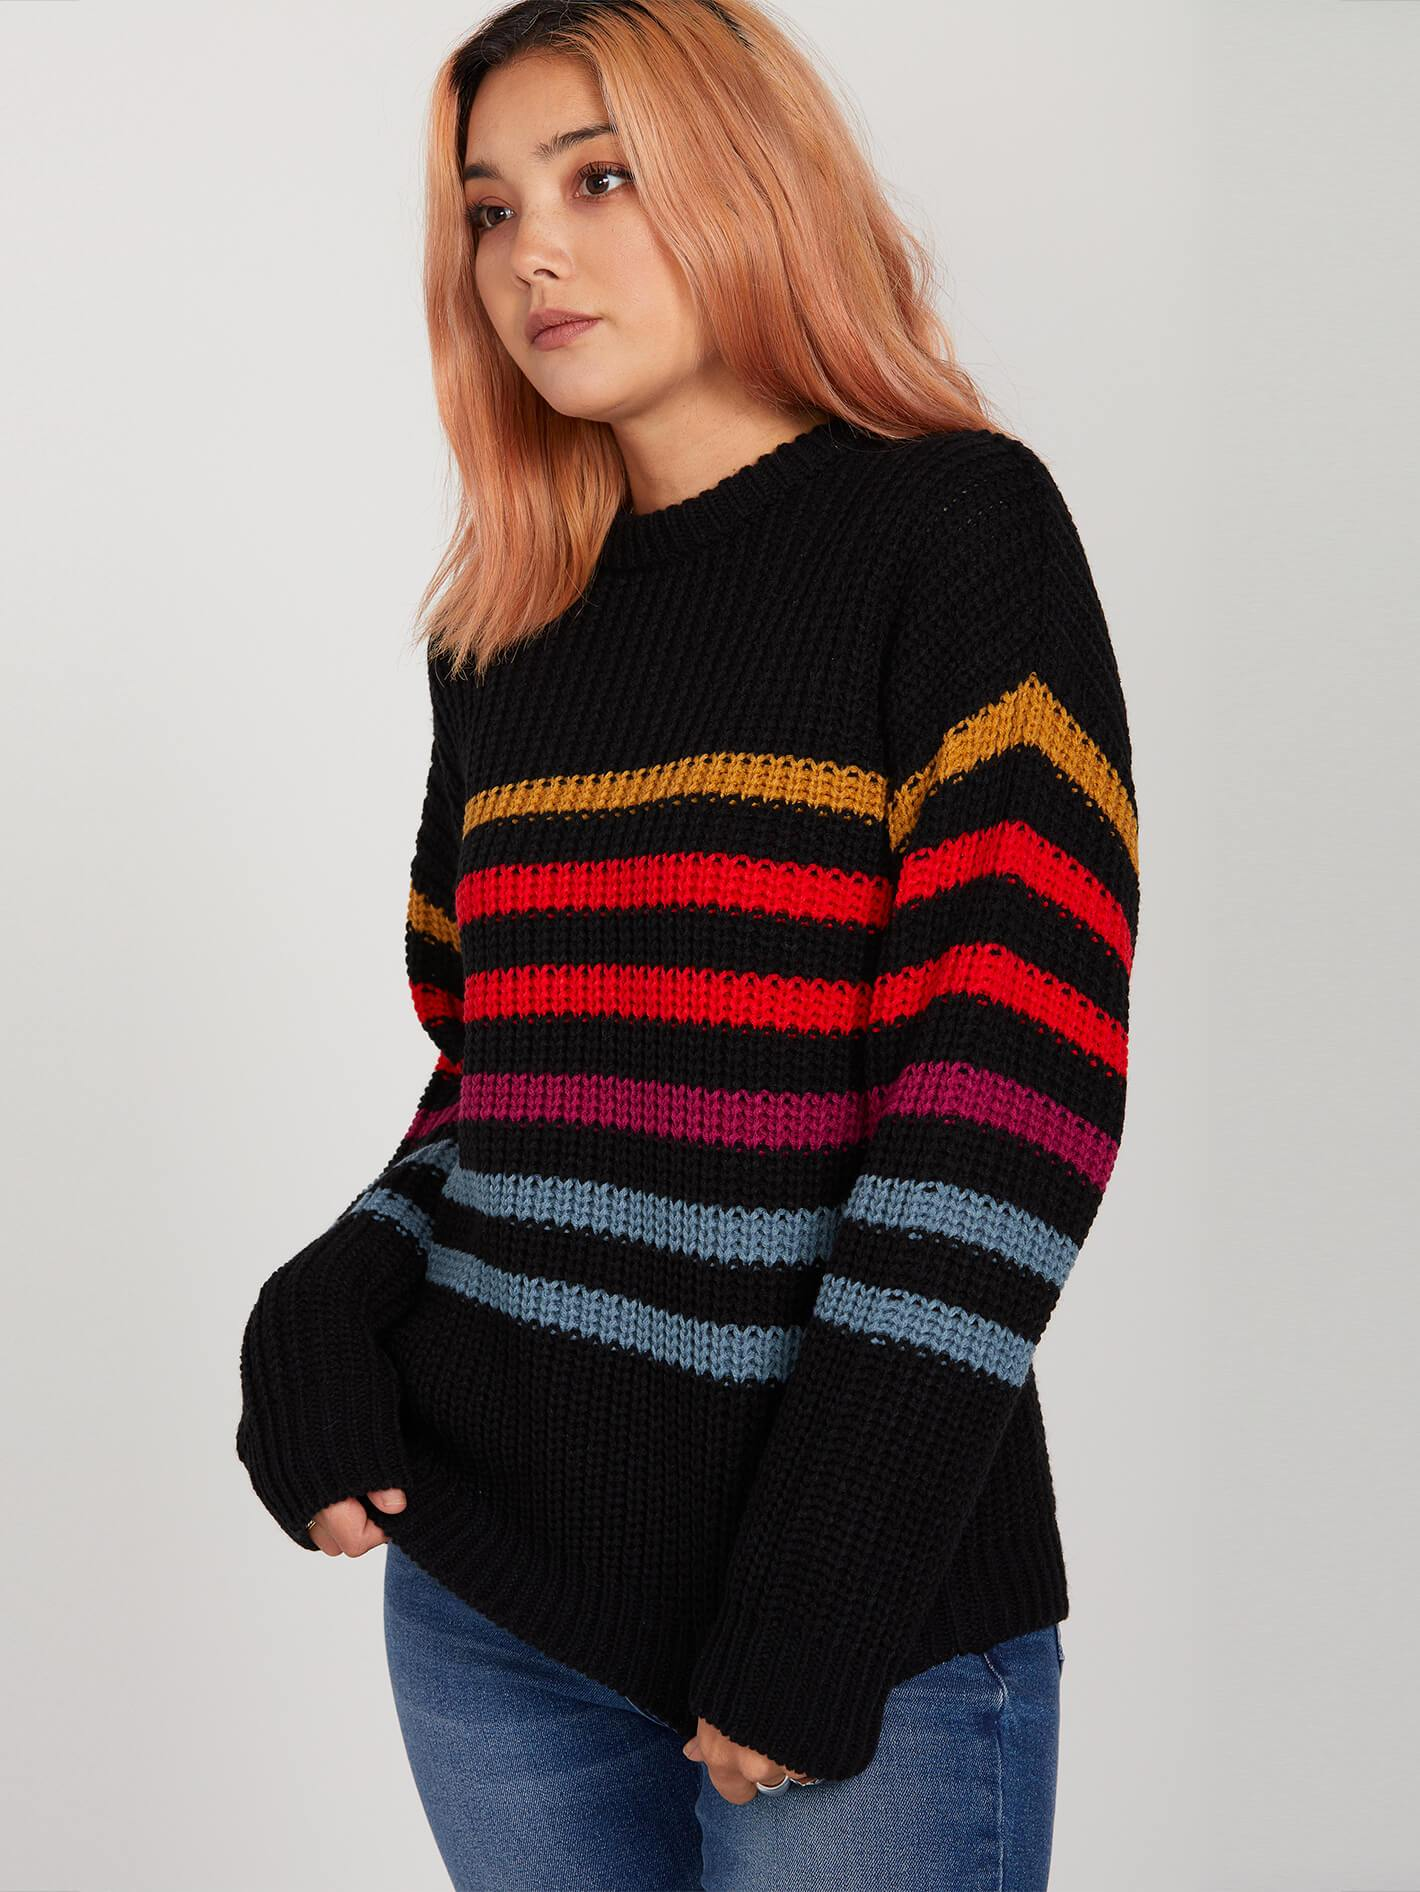 Volcom Move on Up Sweater - 88 Gear